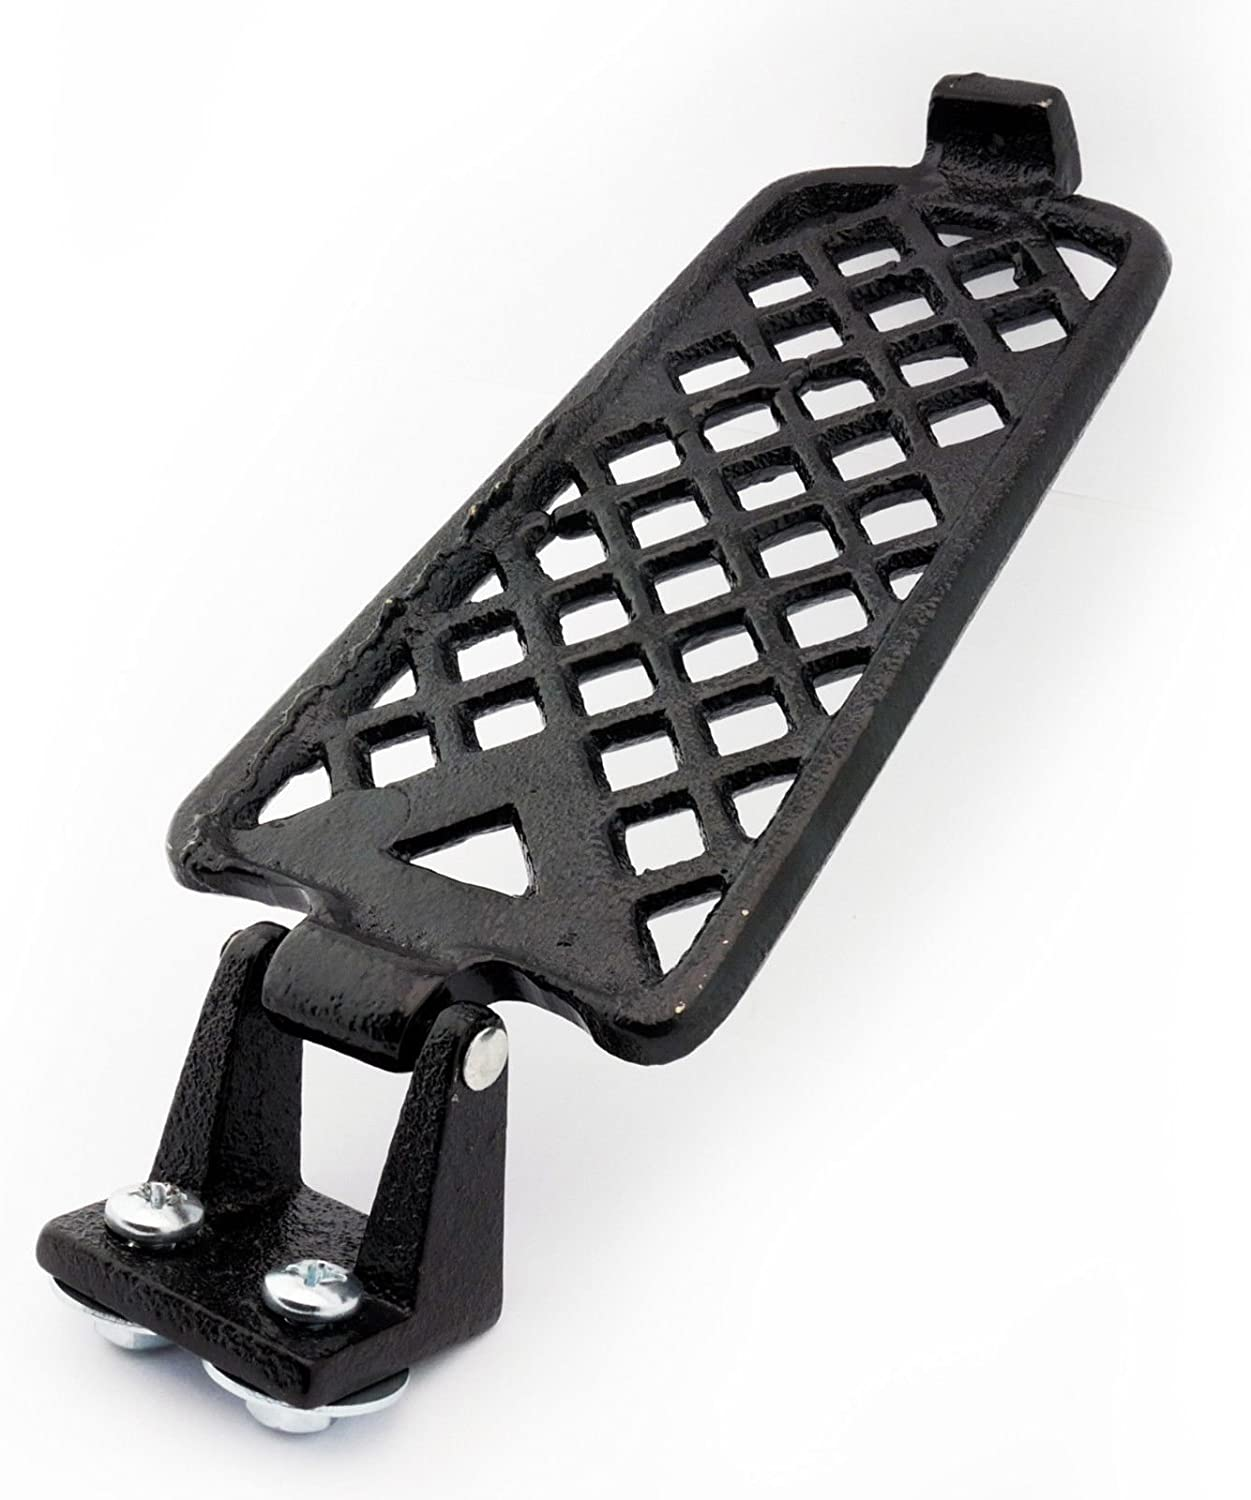 Iron Case Foot Pedal #29402 For Industrial Sewing Machine